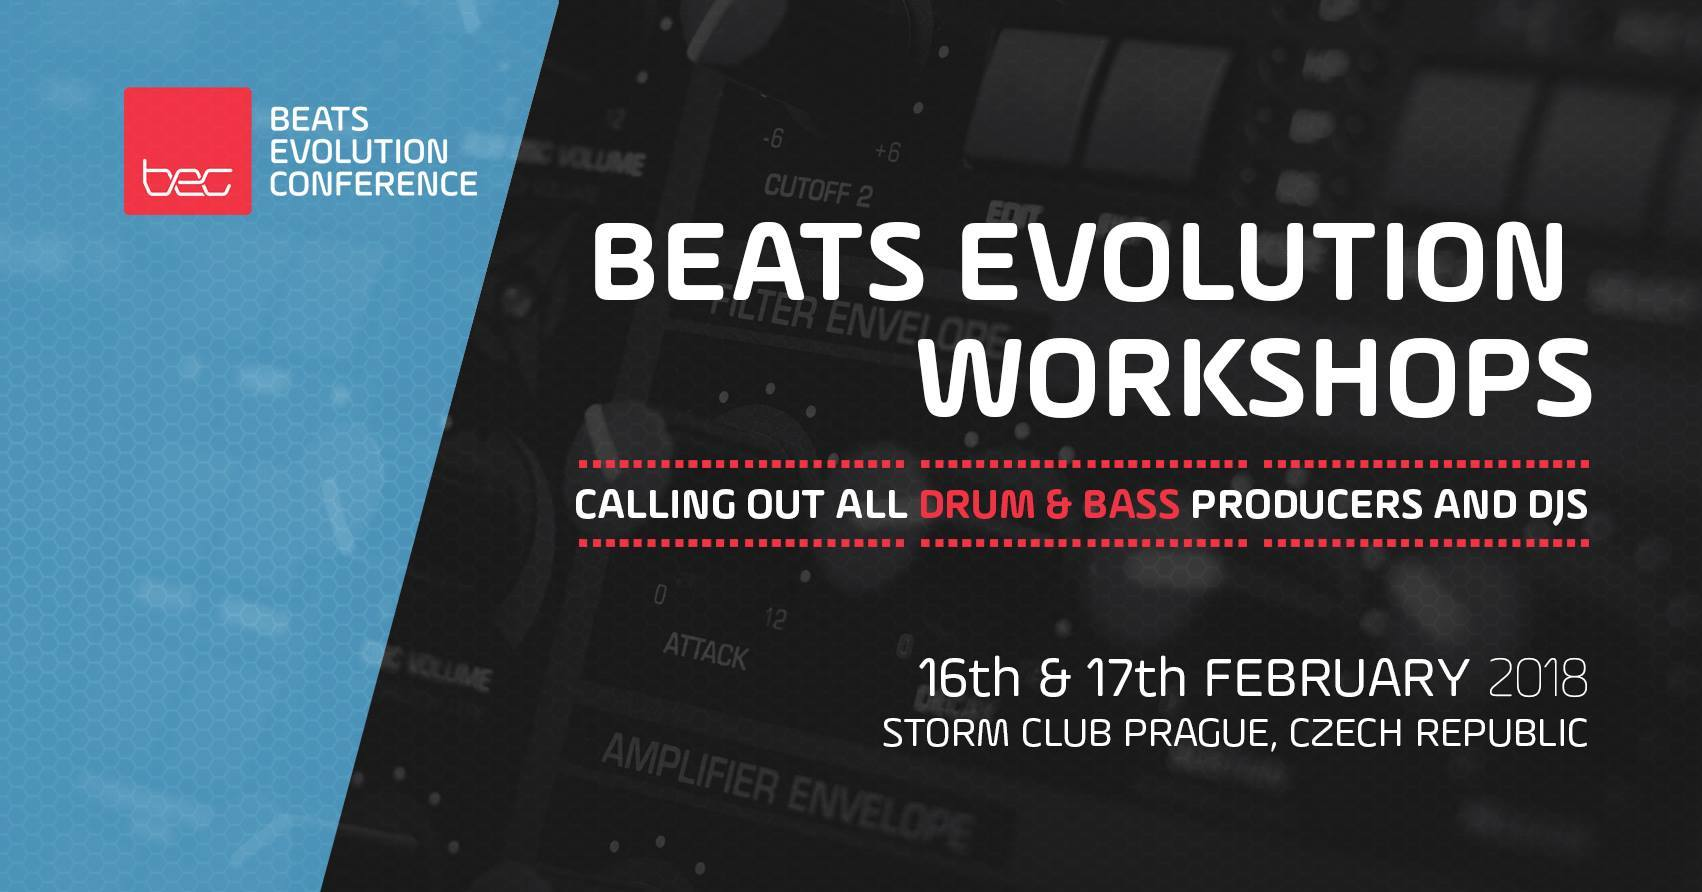 16-17.2.2018 Beats Evolution Conference klub Storm